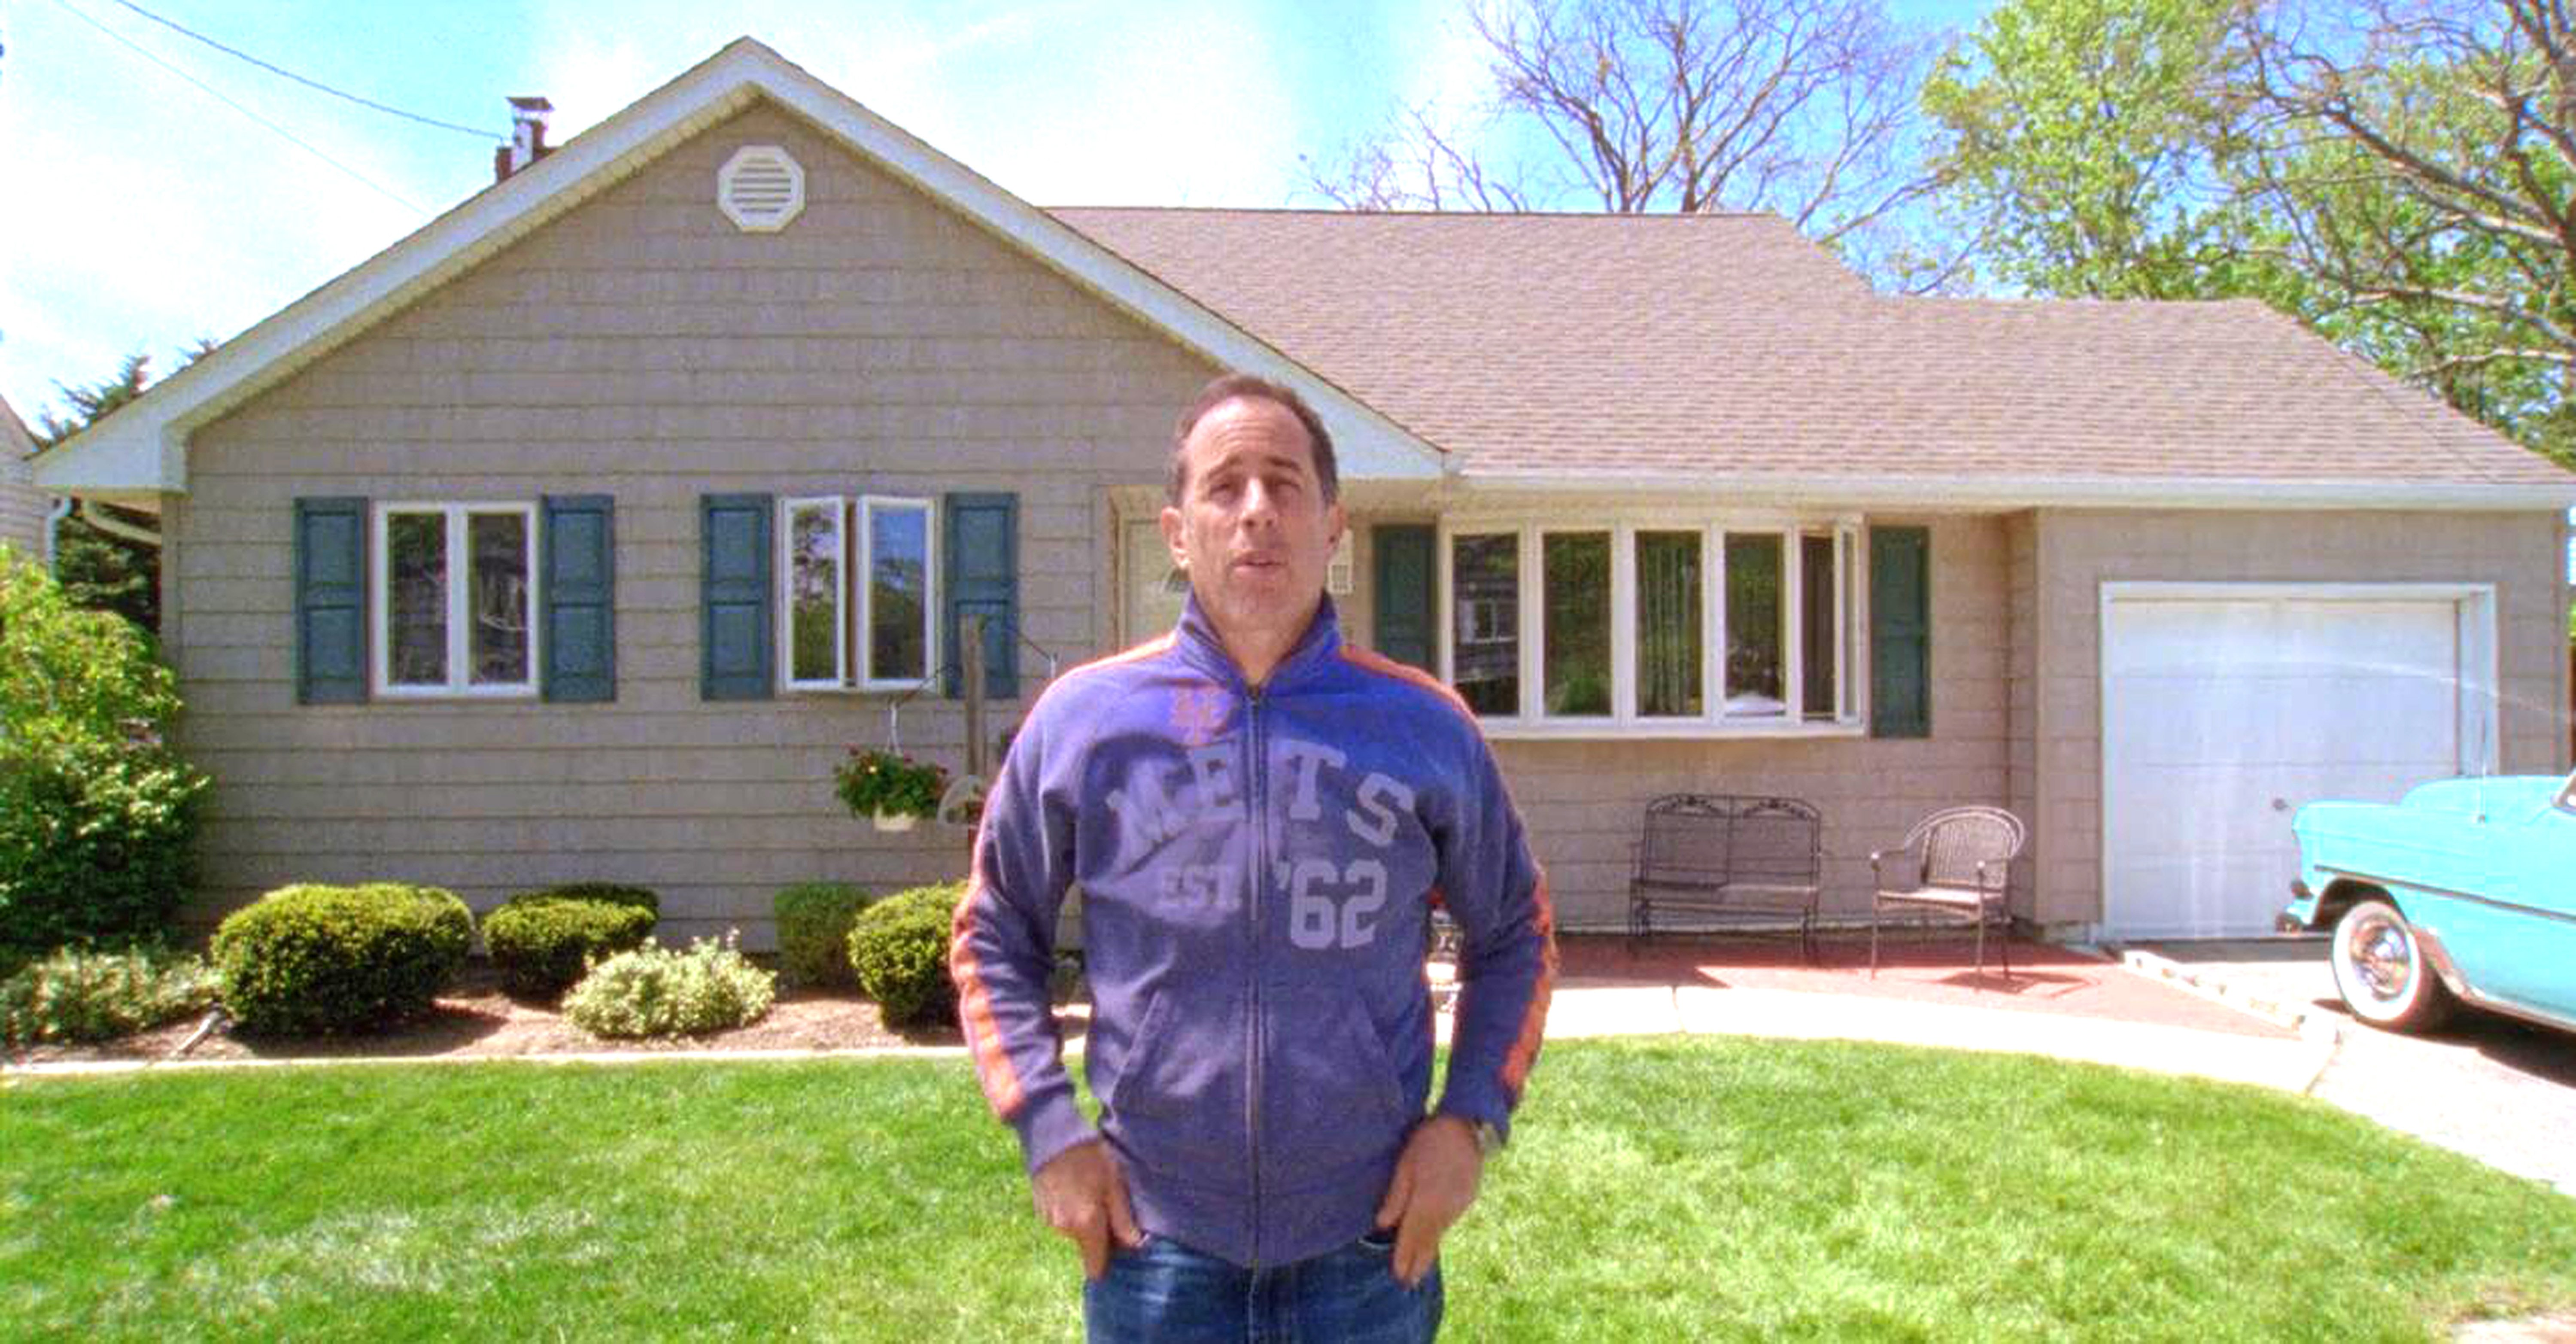 Jerry seinfeld home pictures.